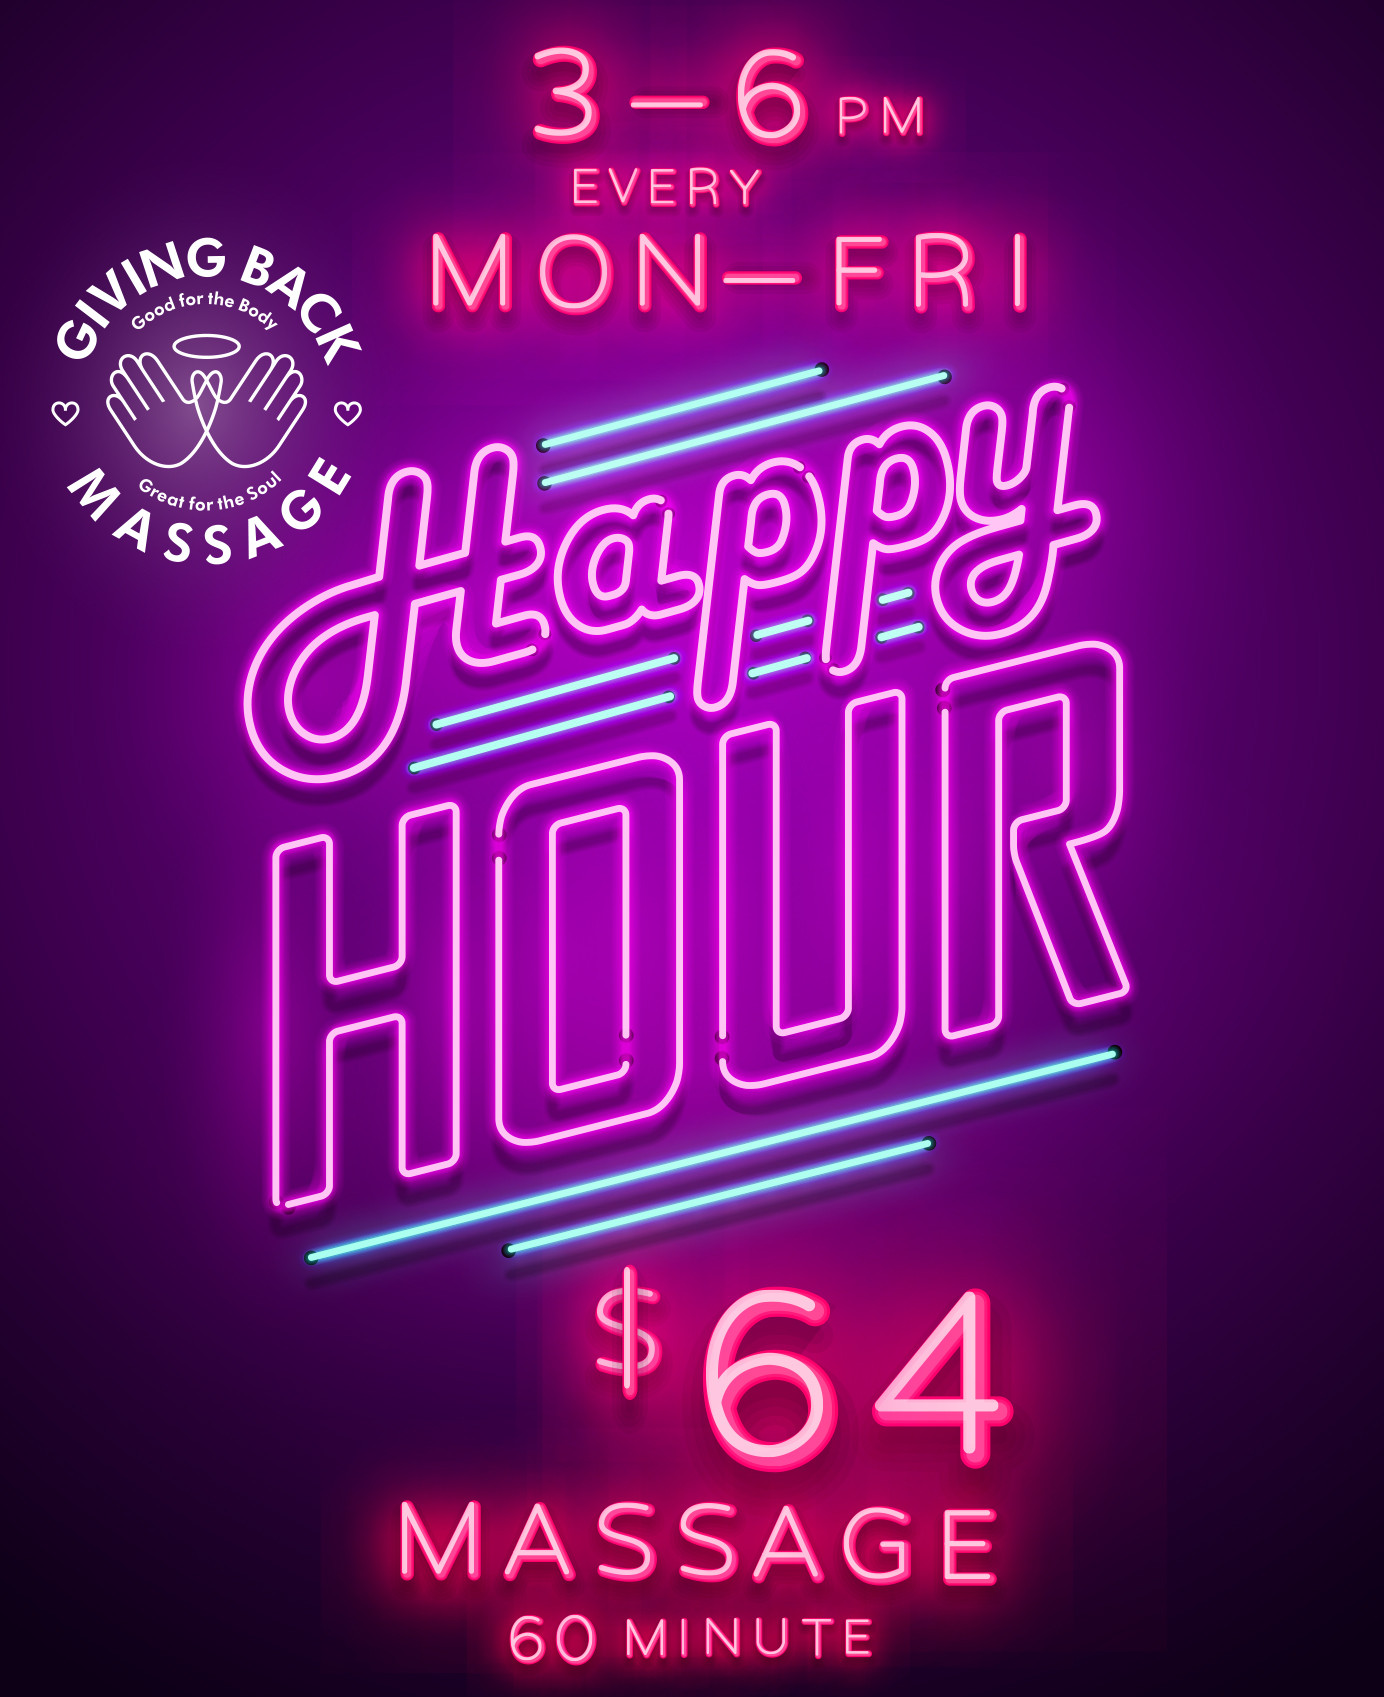 60-minute Happy Hour Special!